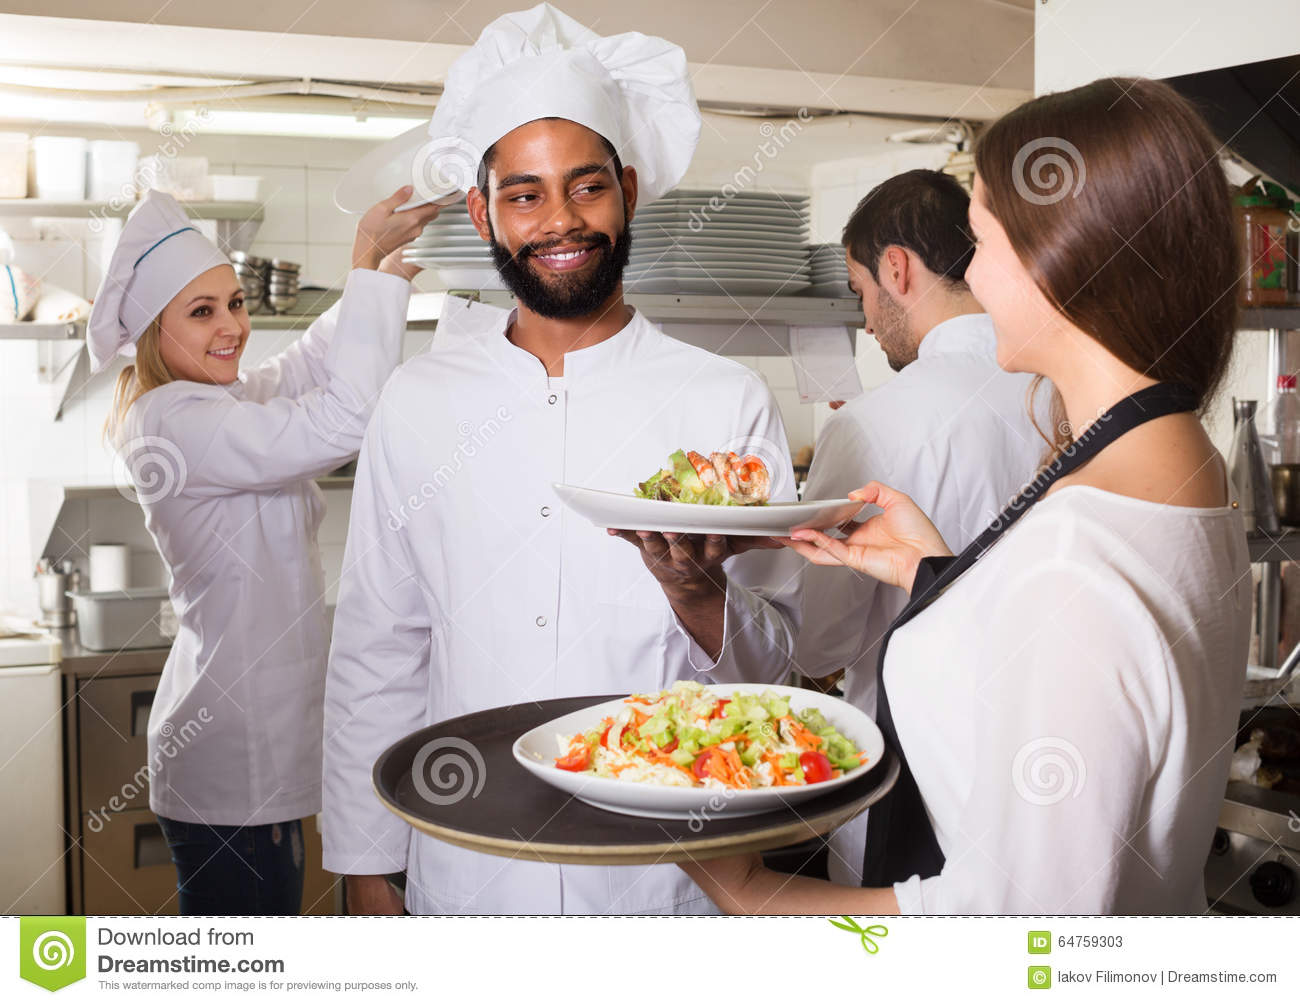 Exterior: Waitress And Cooking Team In Restaurant Stock Image